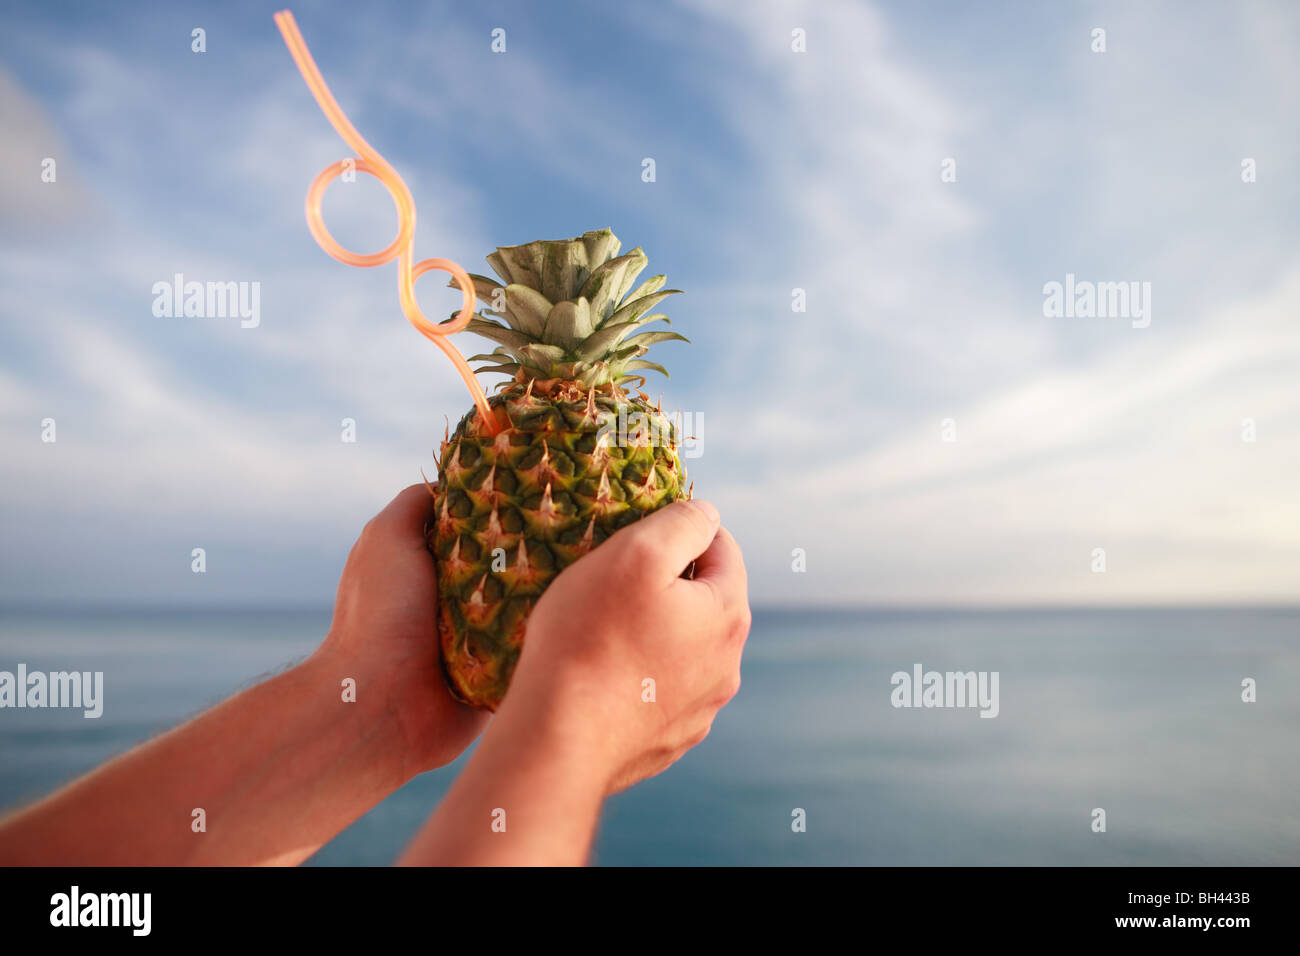 A man's hands holding a tropical pineapple cocktail drink with a straw against a blue sea and sky - Stock Image